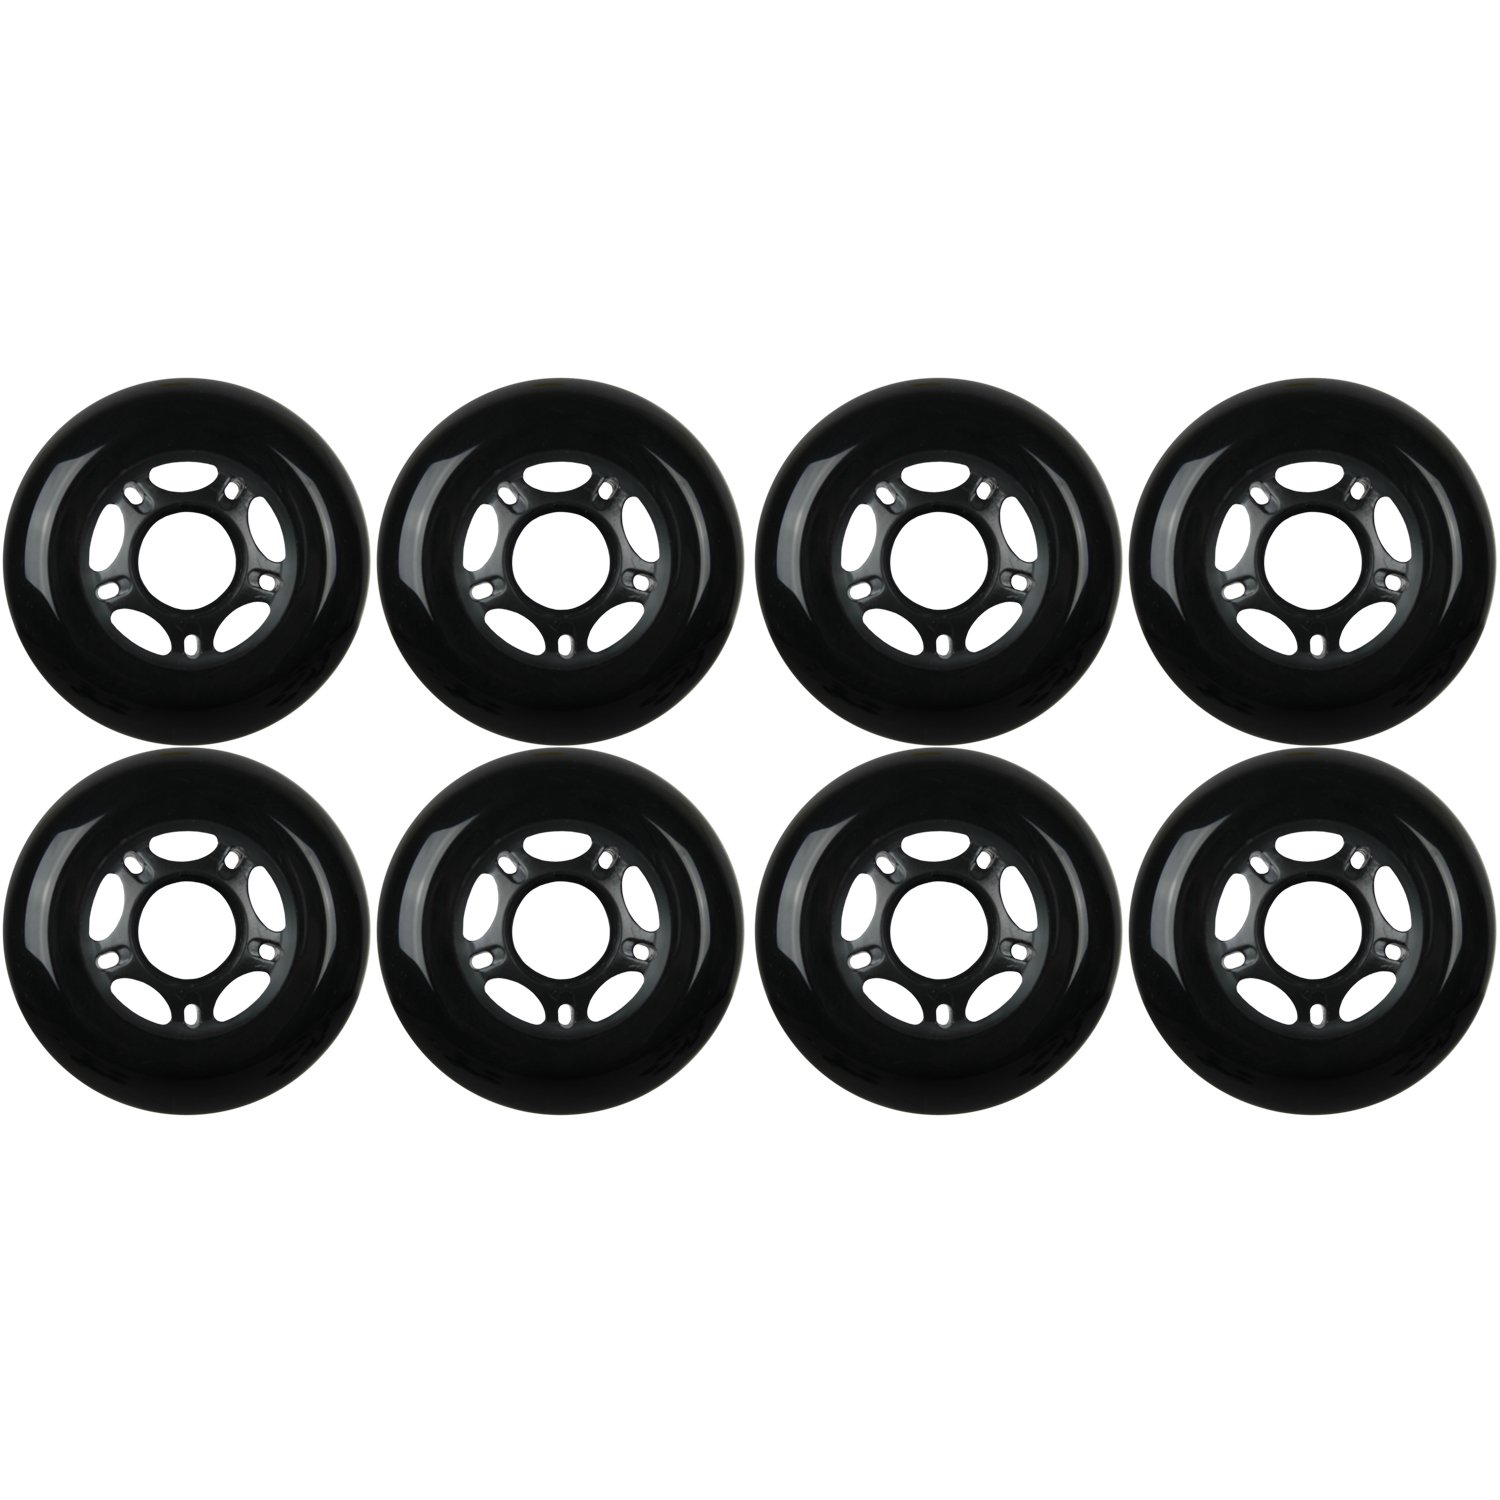 KSS Outdoor Asphalt Formula 89A Inline Skate X8 Wheels, Black, 76mm